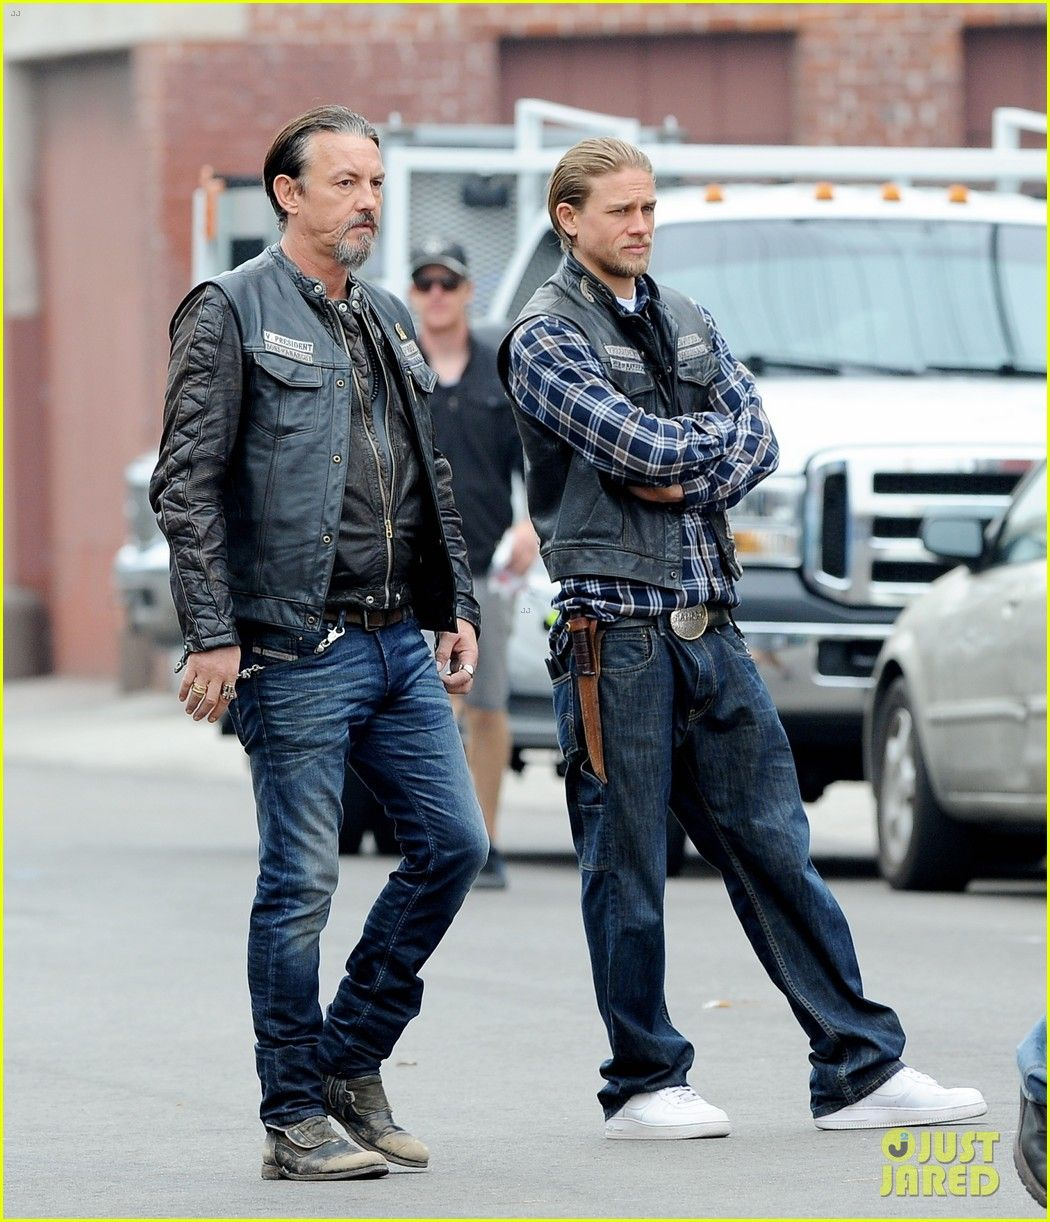 Charlie Hunnam Rocks Plaid While Shooting Scenes For The Last Episodes Of His Hit Show Sons Of Anarc Sons Of Anarchy Samcro Sons Of Anarchy Jax Sons Of Anarchy